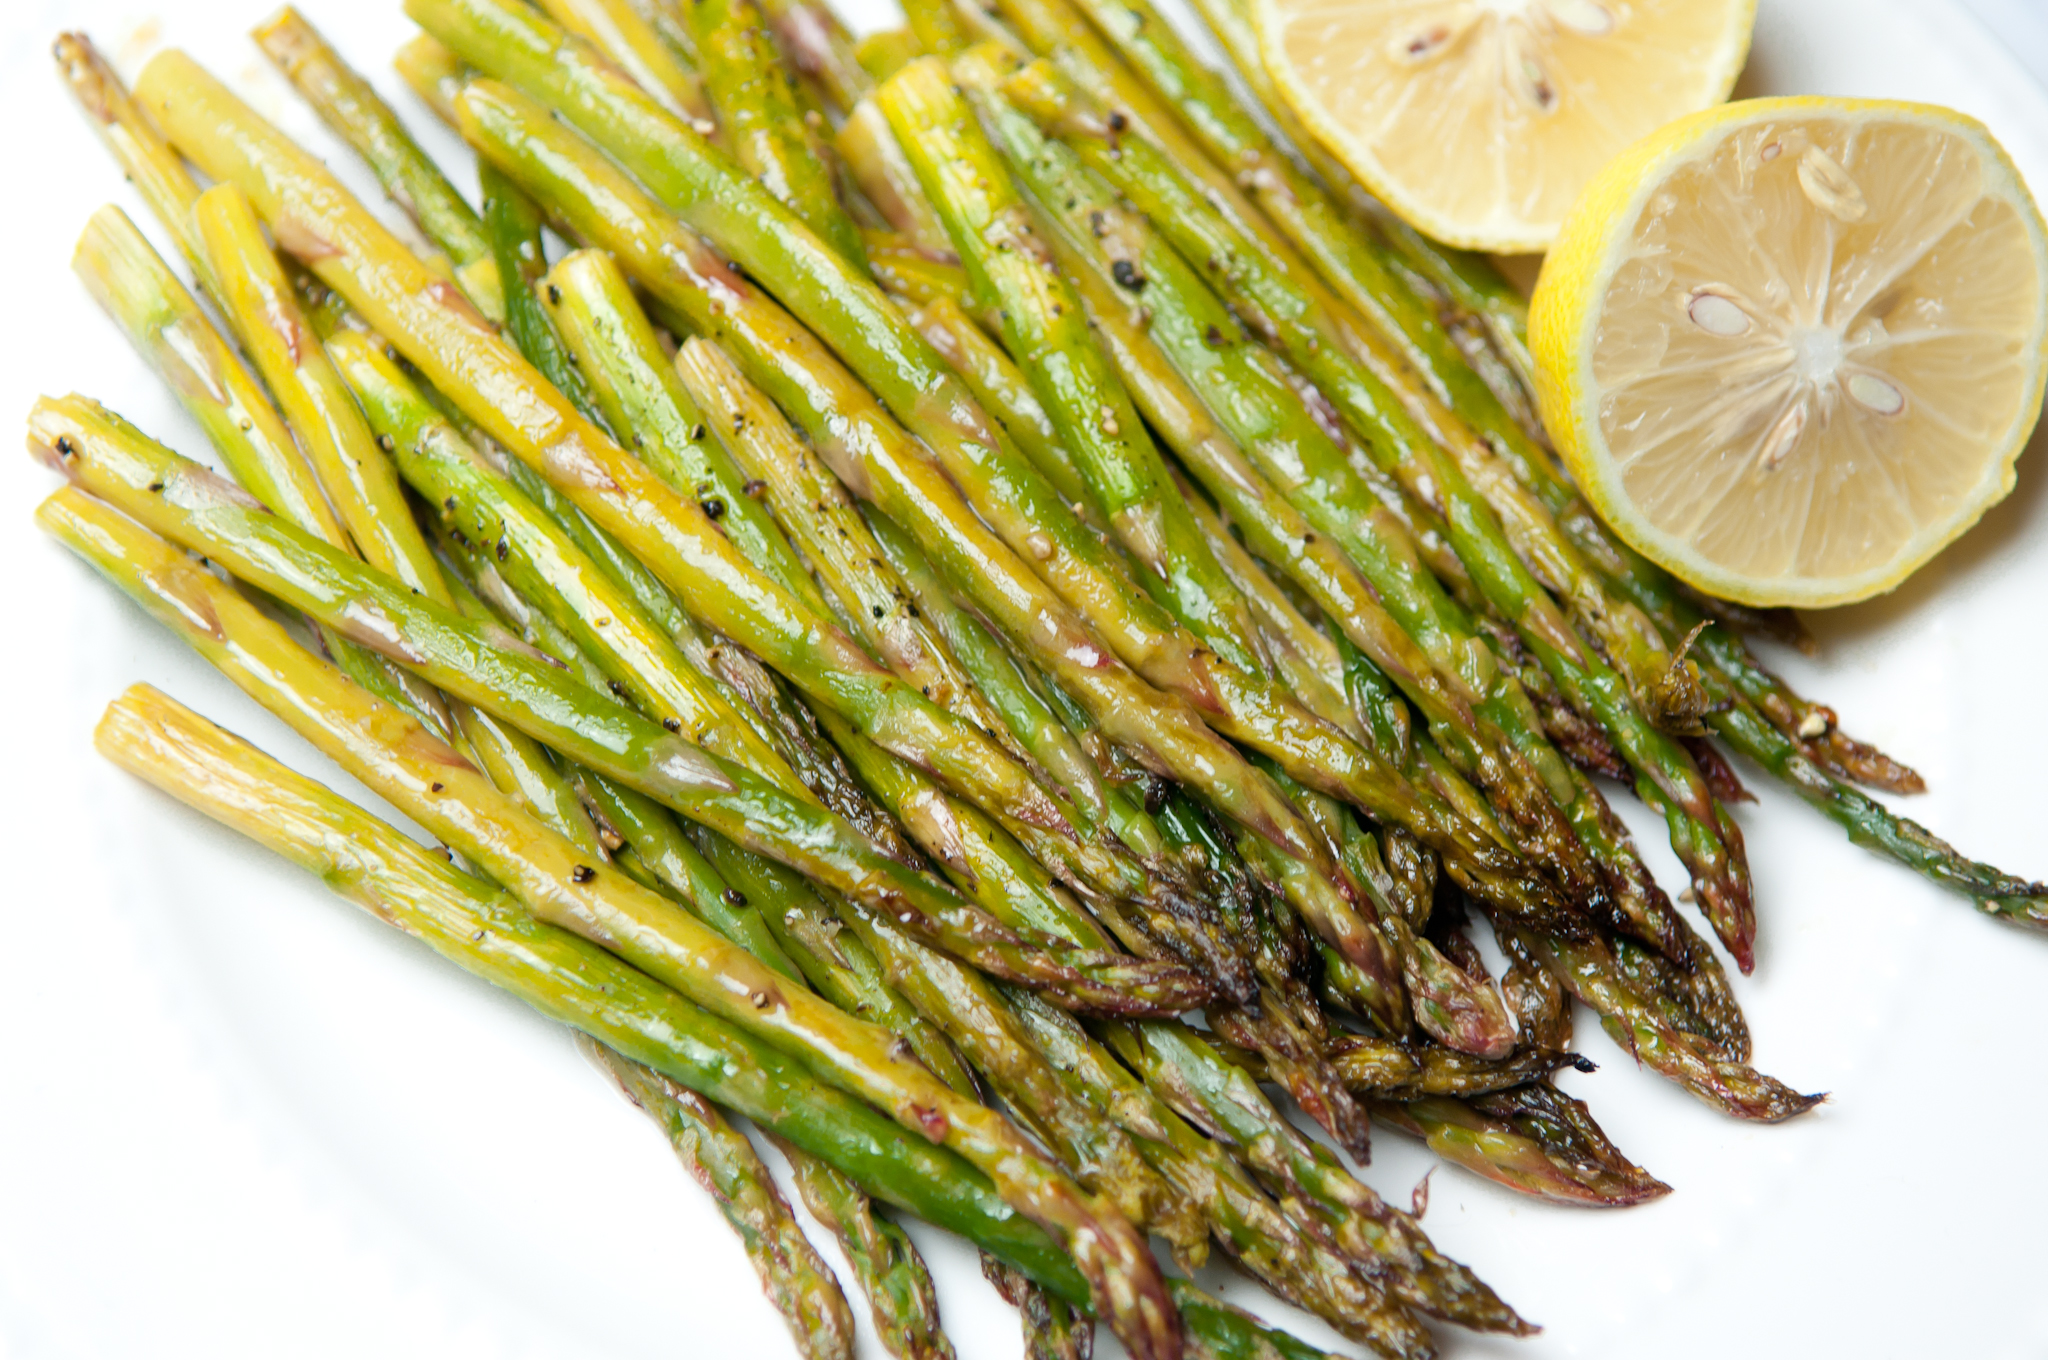 If You're Looking For An Easy Way To Cook Some Asparagus I Think You